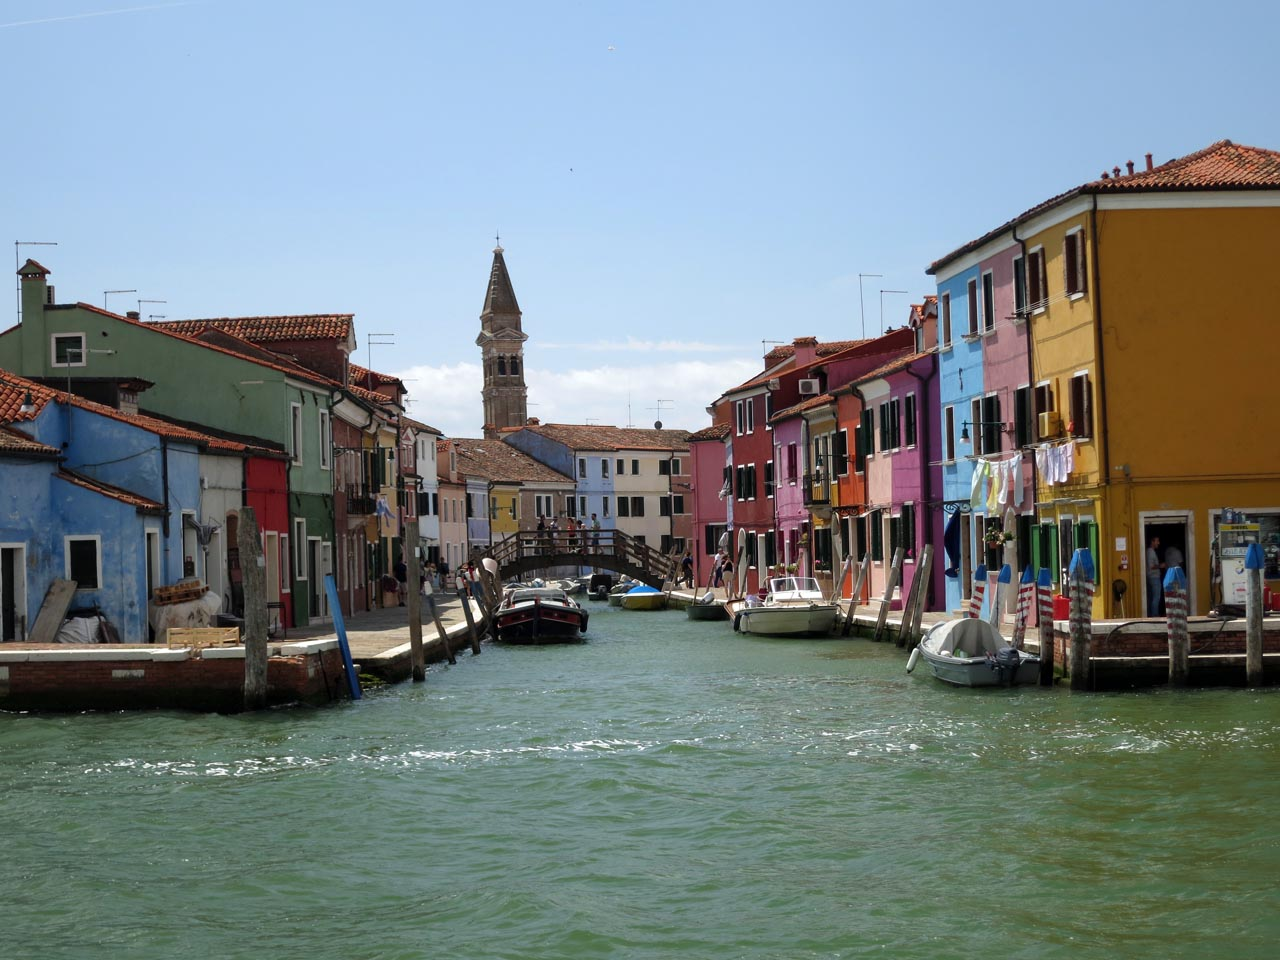 View from Vaporetto (water taxi) as entering Burano